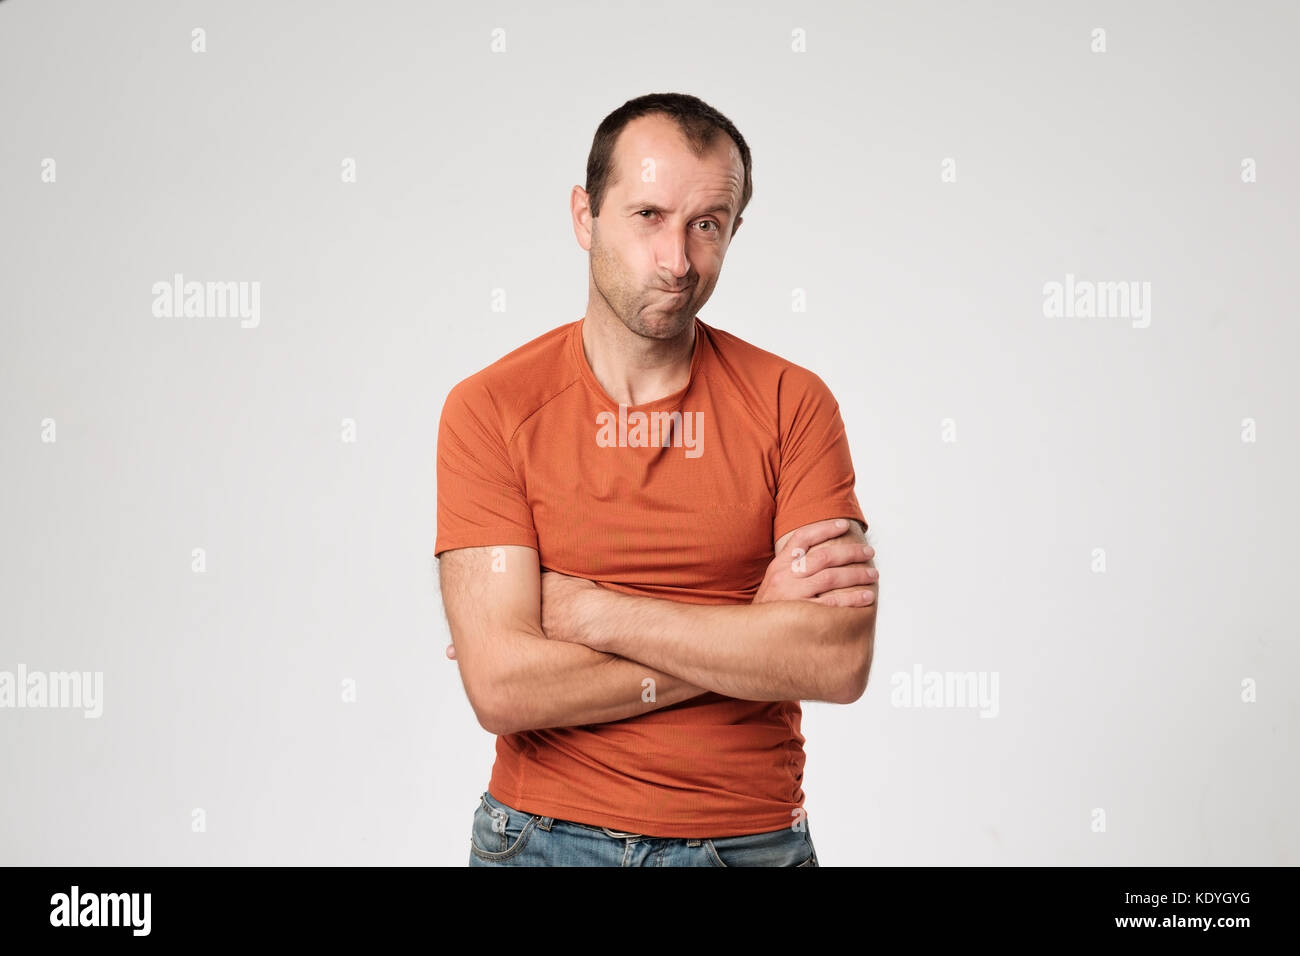 Isolated portrait of angry man wearing orange t-shirt holding arms crossed, having skeptical and dissatisfied look. - Stock Image